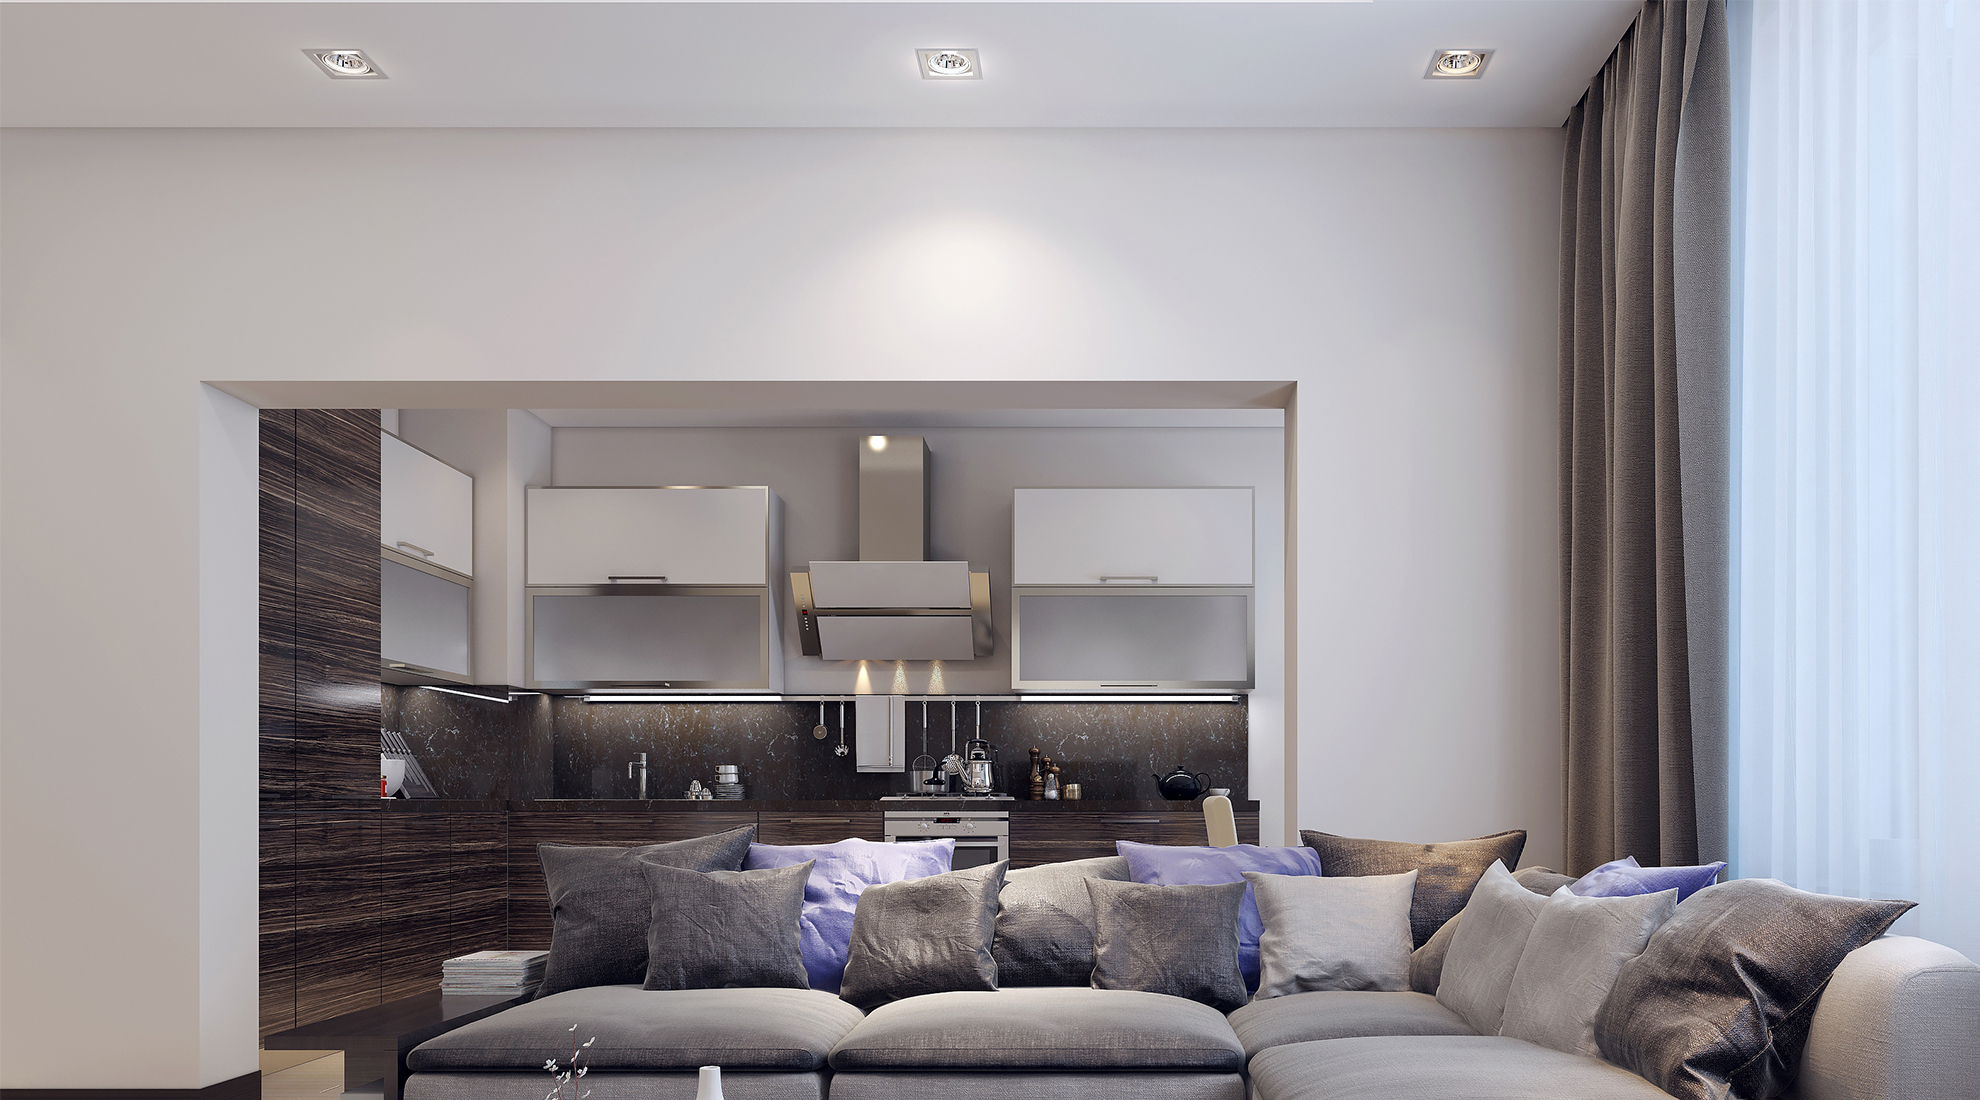 Recessed Lighting Guide How To Buy Recessed Lighting At Lumens Com